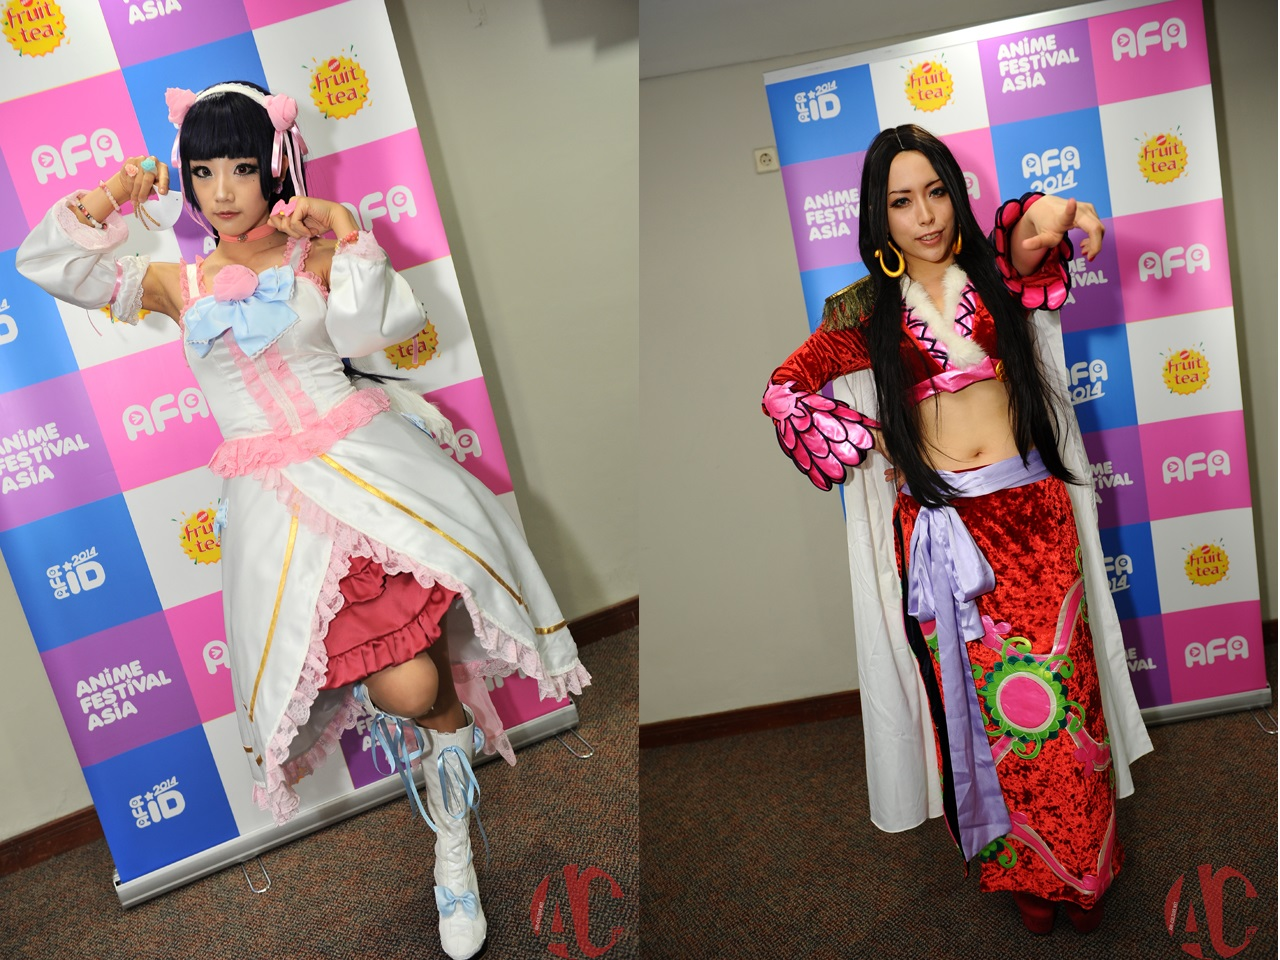 AFA ID 2014: Interview with Aza Miyuko and Kisaki Urumi